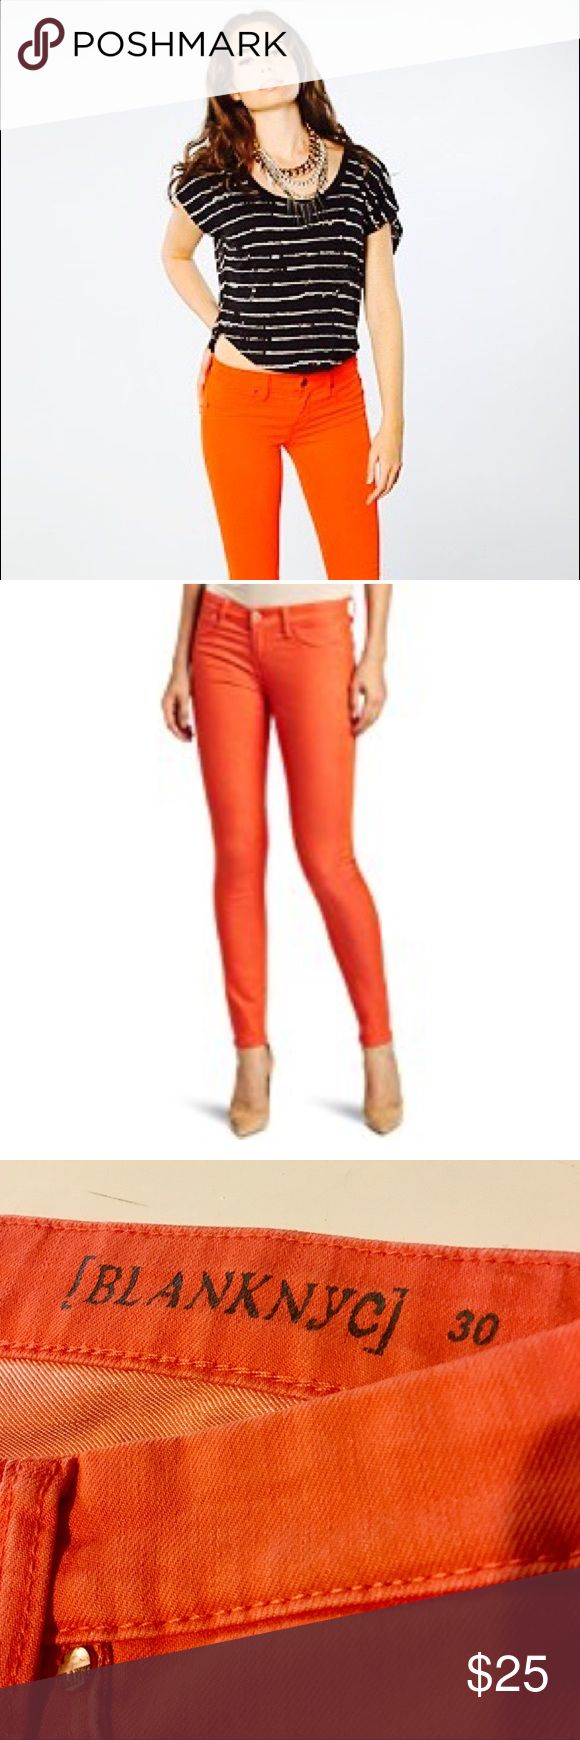 BlankNYC Orange Skinny Jeans NWOT SIZE 9 Amazing - BLANKNYC - Super Hot Jeans for Fall -Do Thanksgiving Looking Fabulous and Slay the Day! New Without Tags - Slightly Stretchy - size 30 - Converts to size 9 / 10 . Madewell sells BLANKNYC jeans on their jean bar for $110...this is a steal! Blank NYC Jeans Skinny